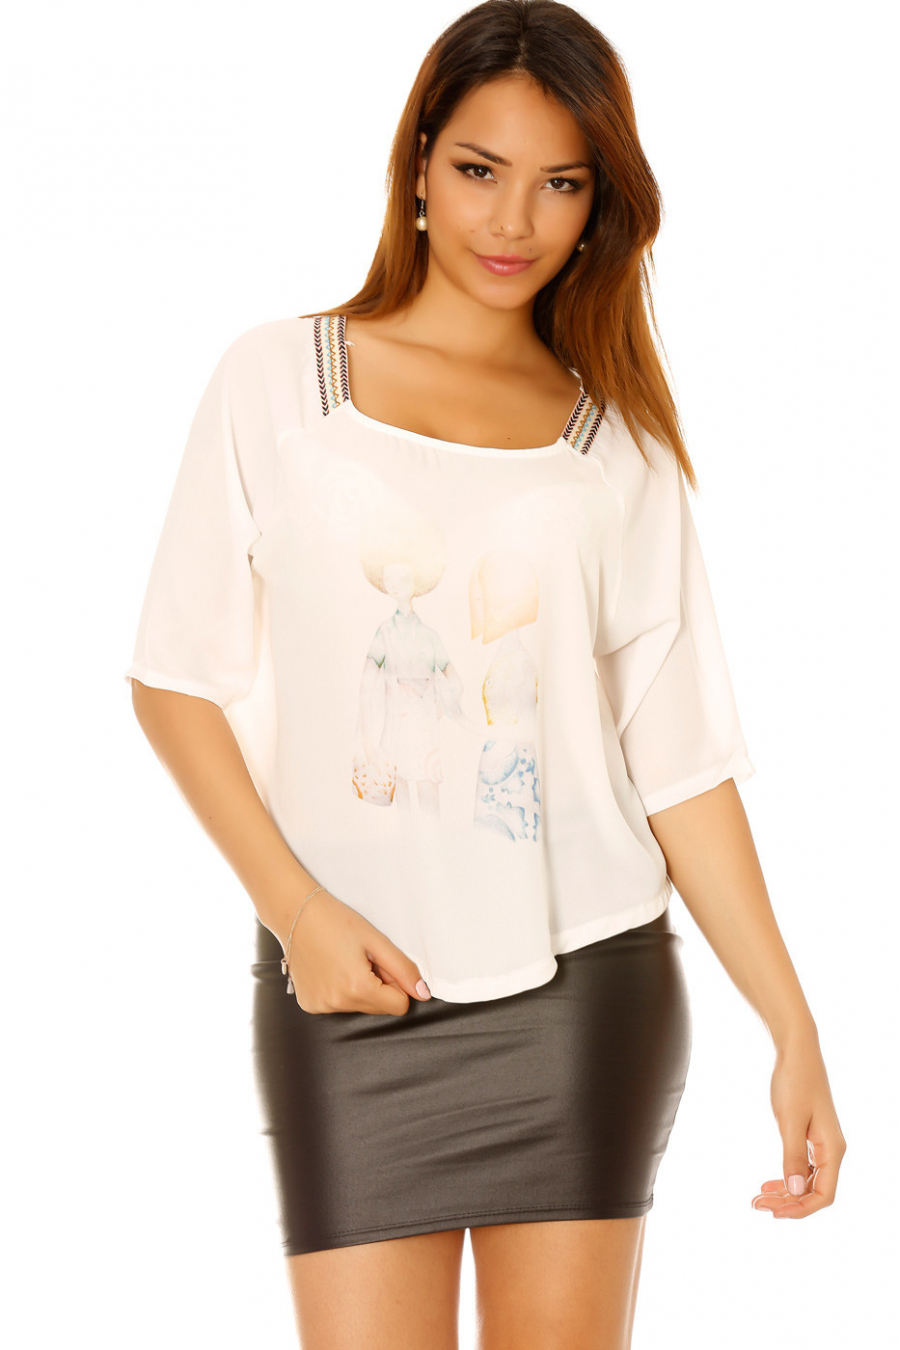 White top with design on the front and Aztec pattern on the shoulders. High Low Price 5560